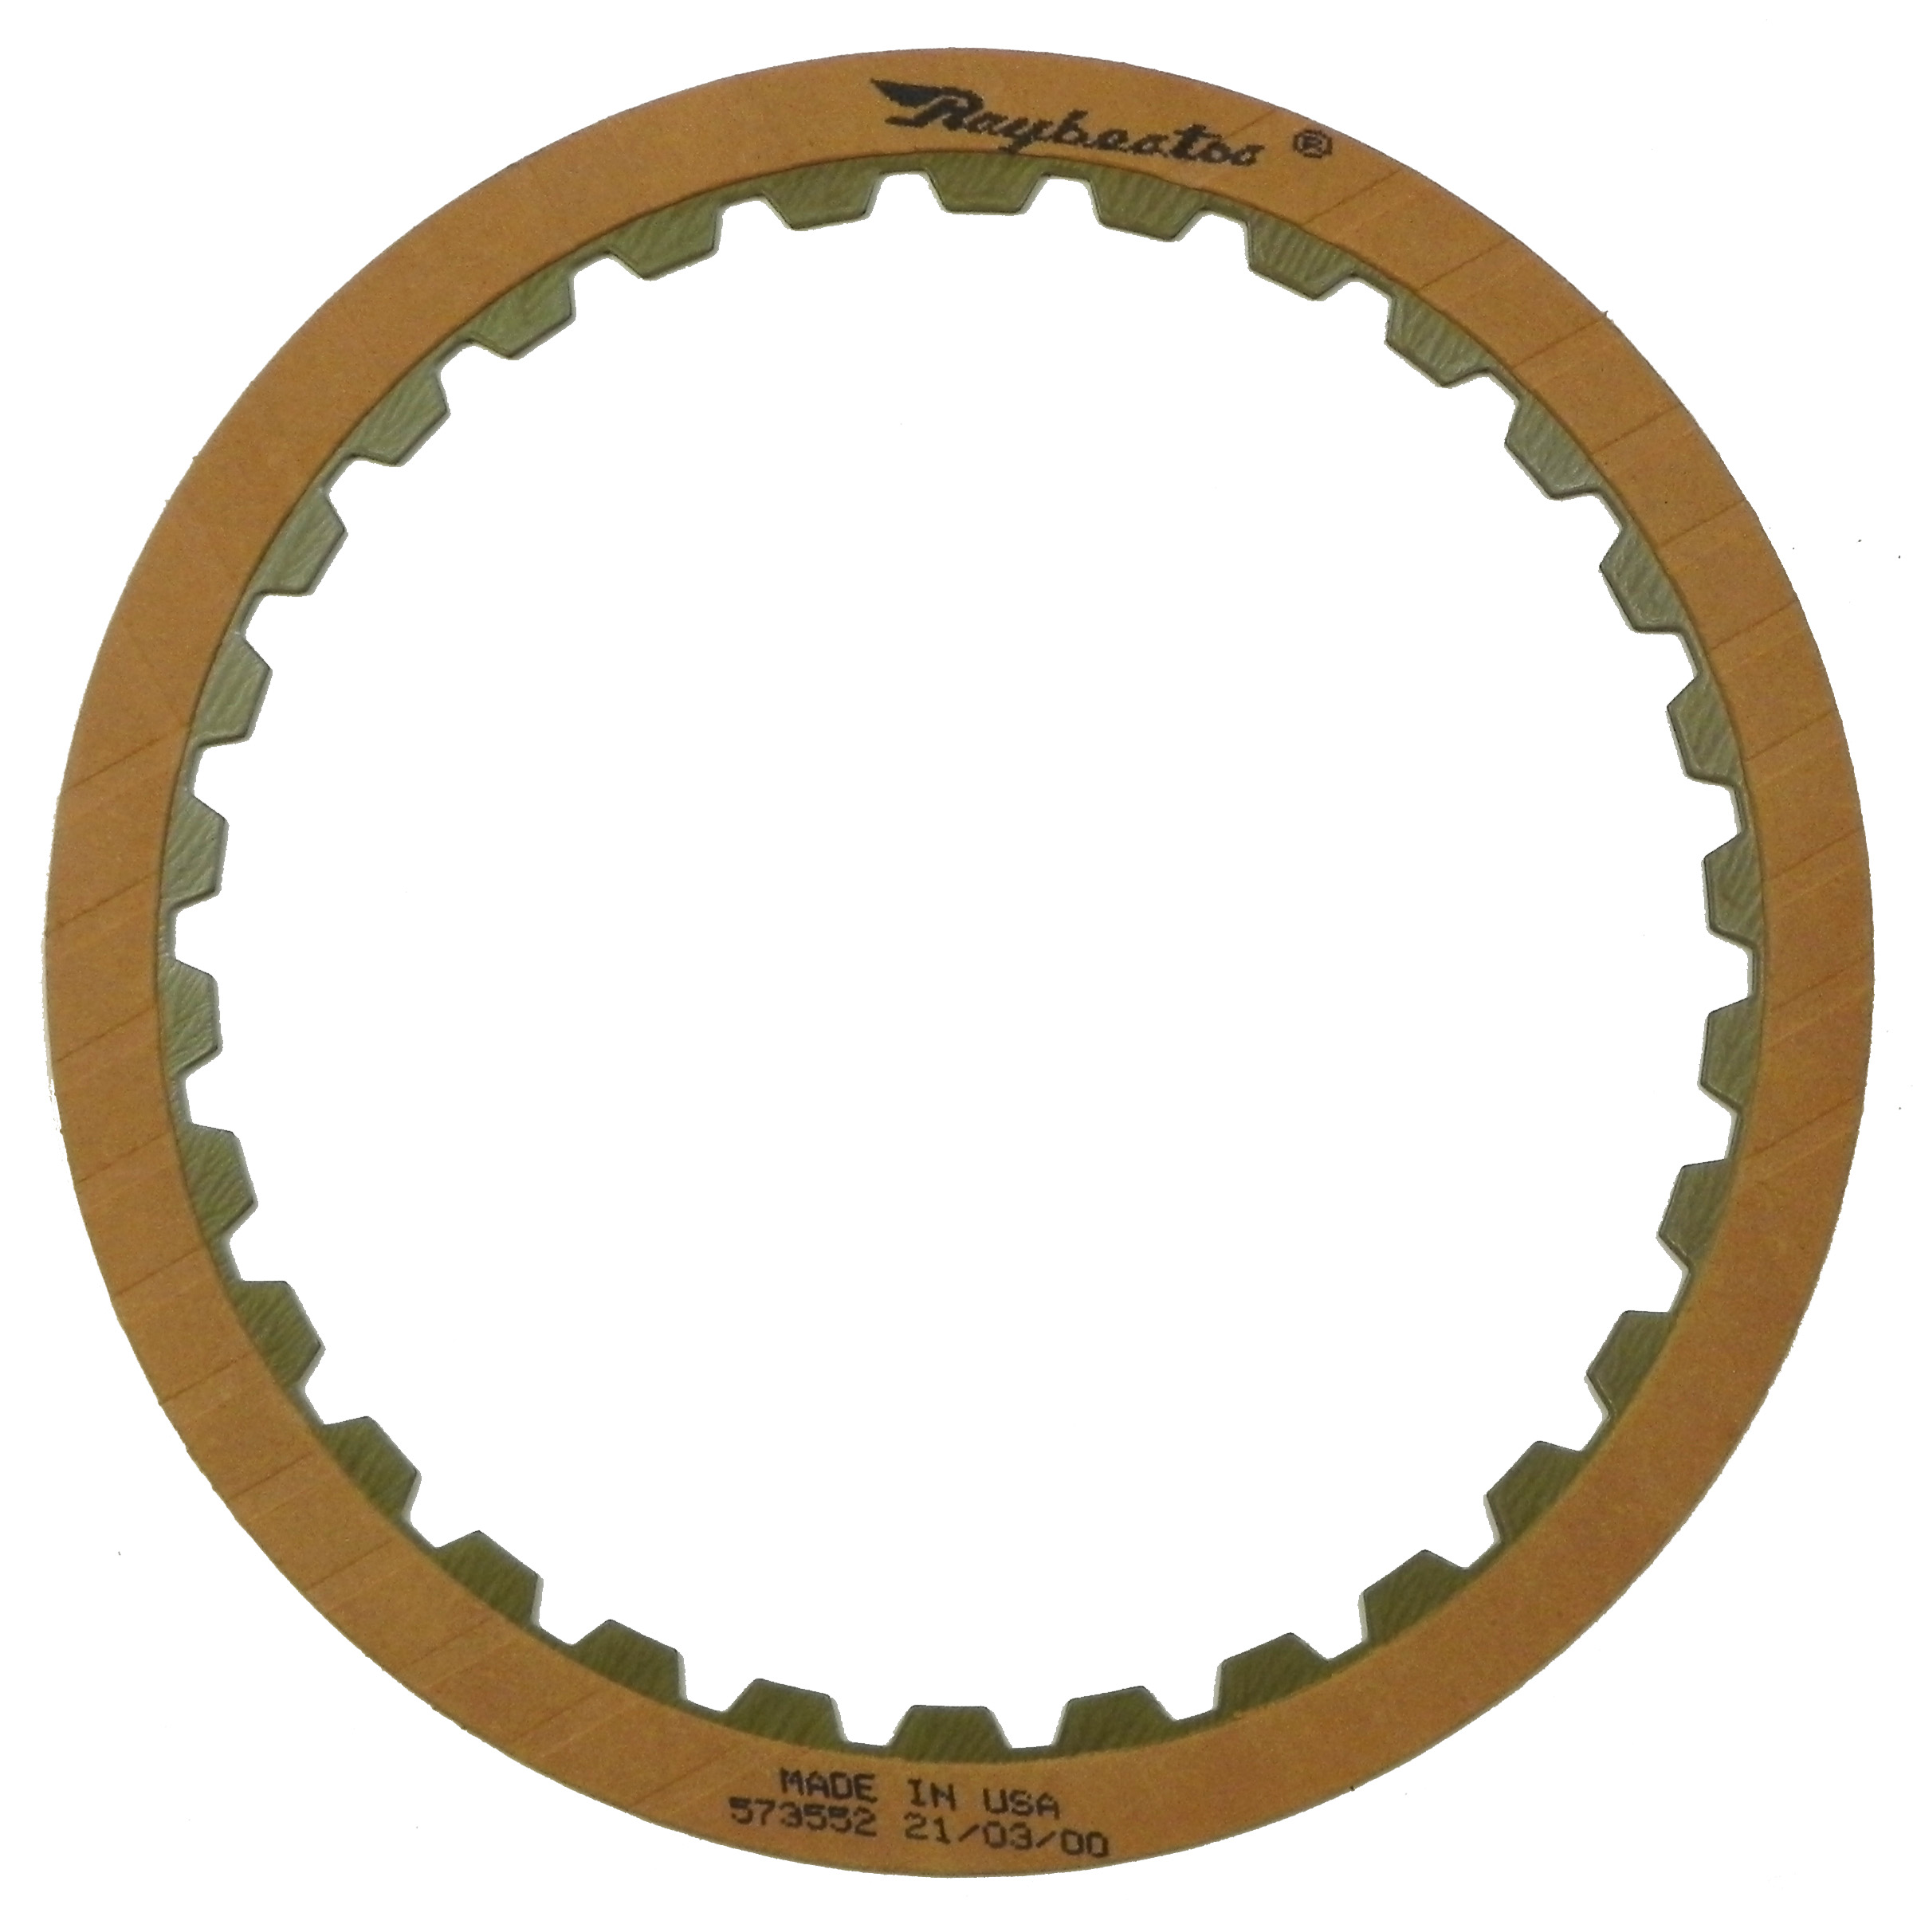 R573552 | 1986-1988 Friction Clutch Plate OE Replacement High